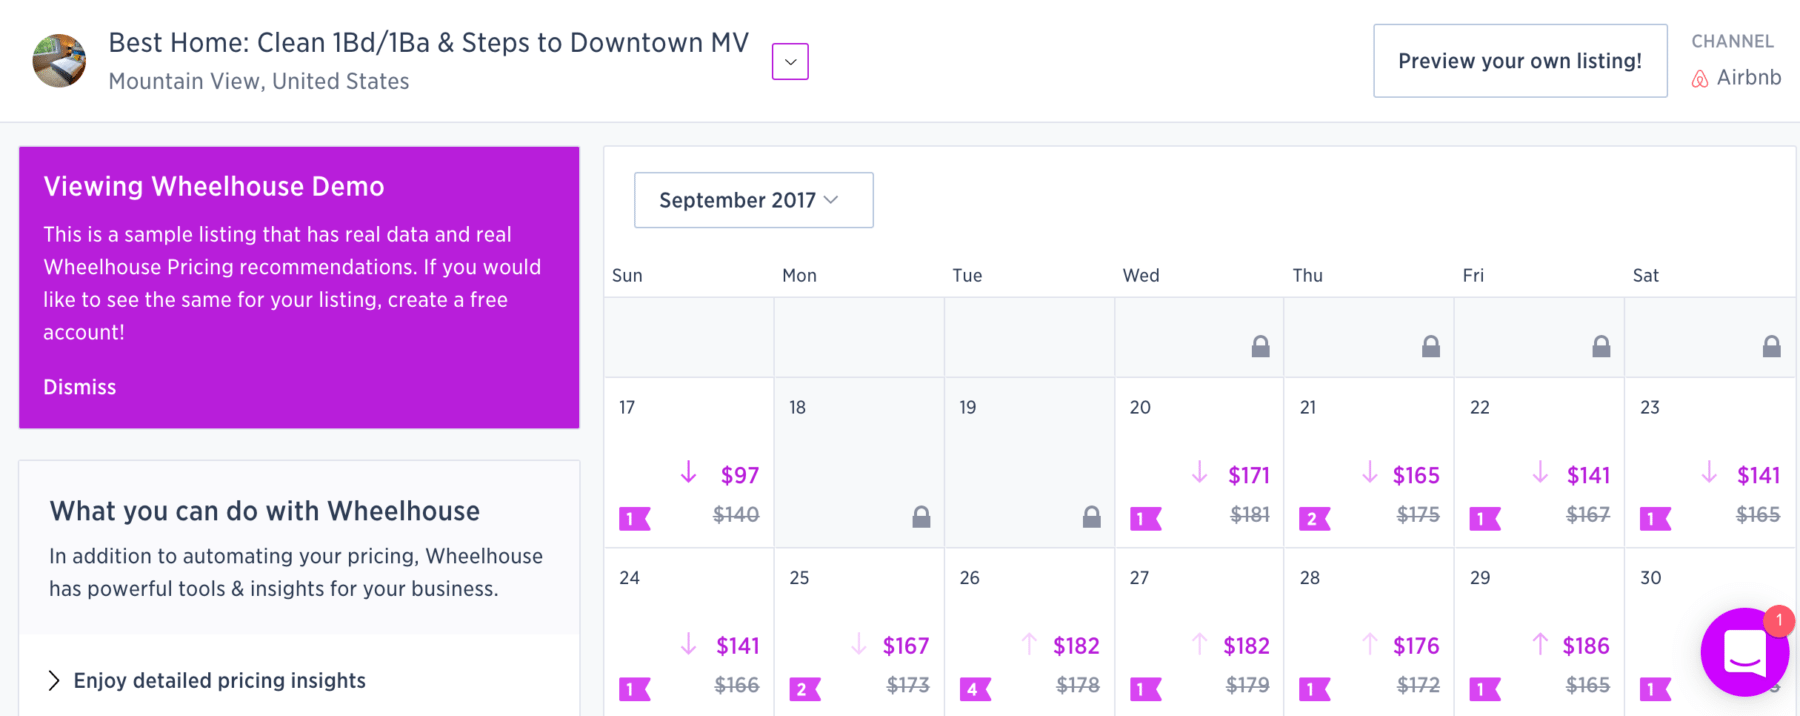 Why You Should Never Use Airbnb Pricing Tool - Part Two